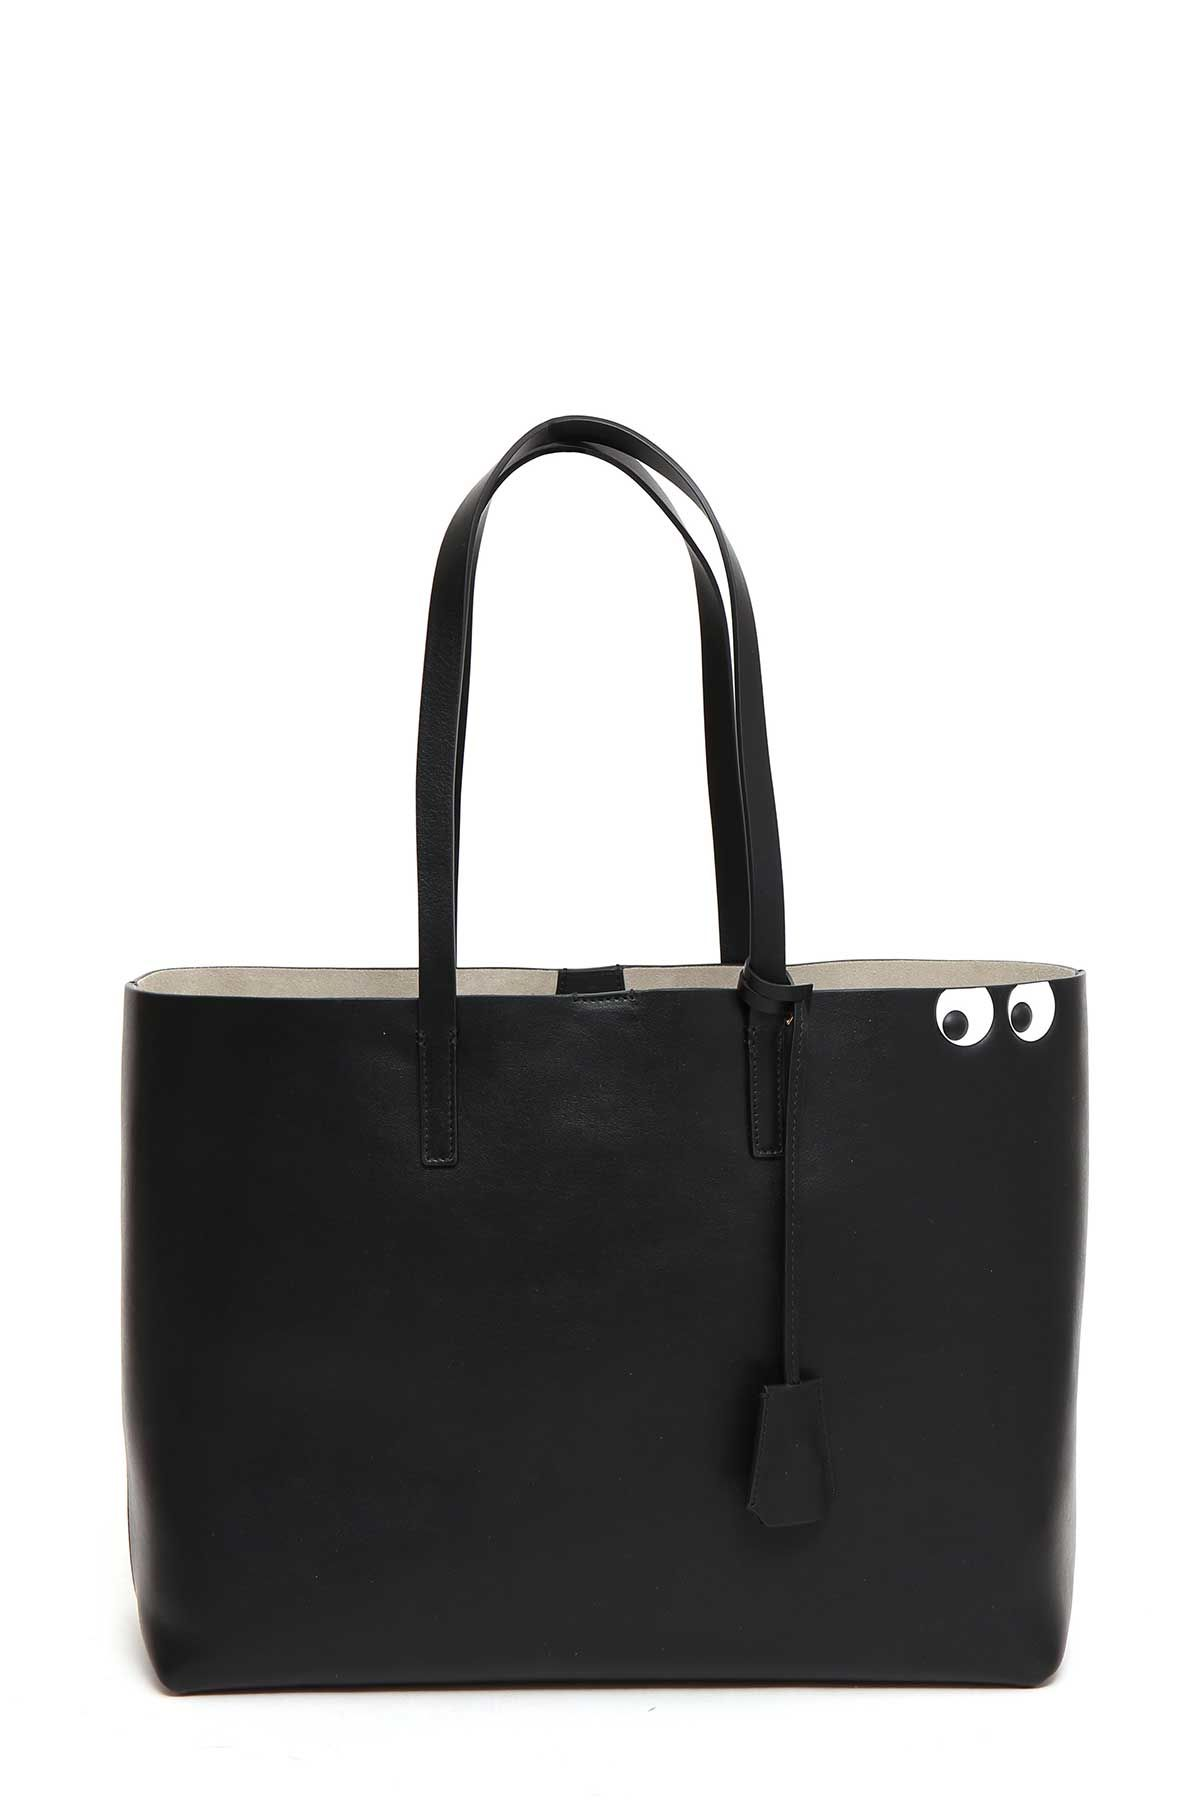 Anya Hindmarch Ebury Shopper Ii Eyes